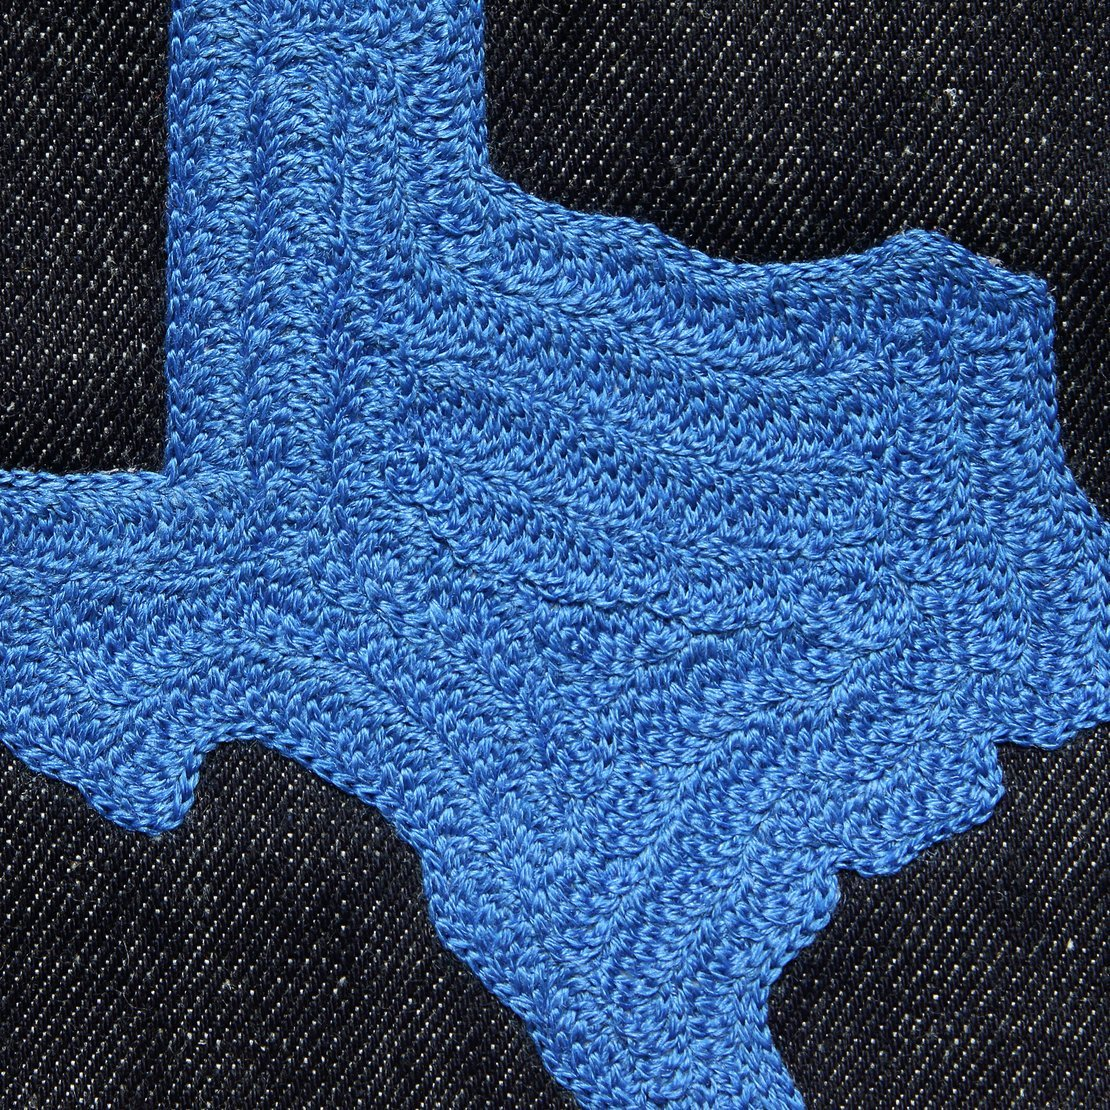 Small Direct Stitch Embroidery - State of Texas